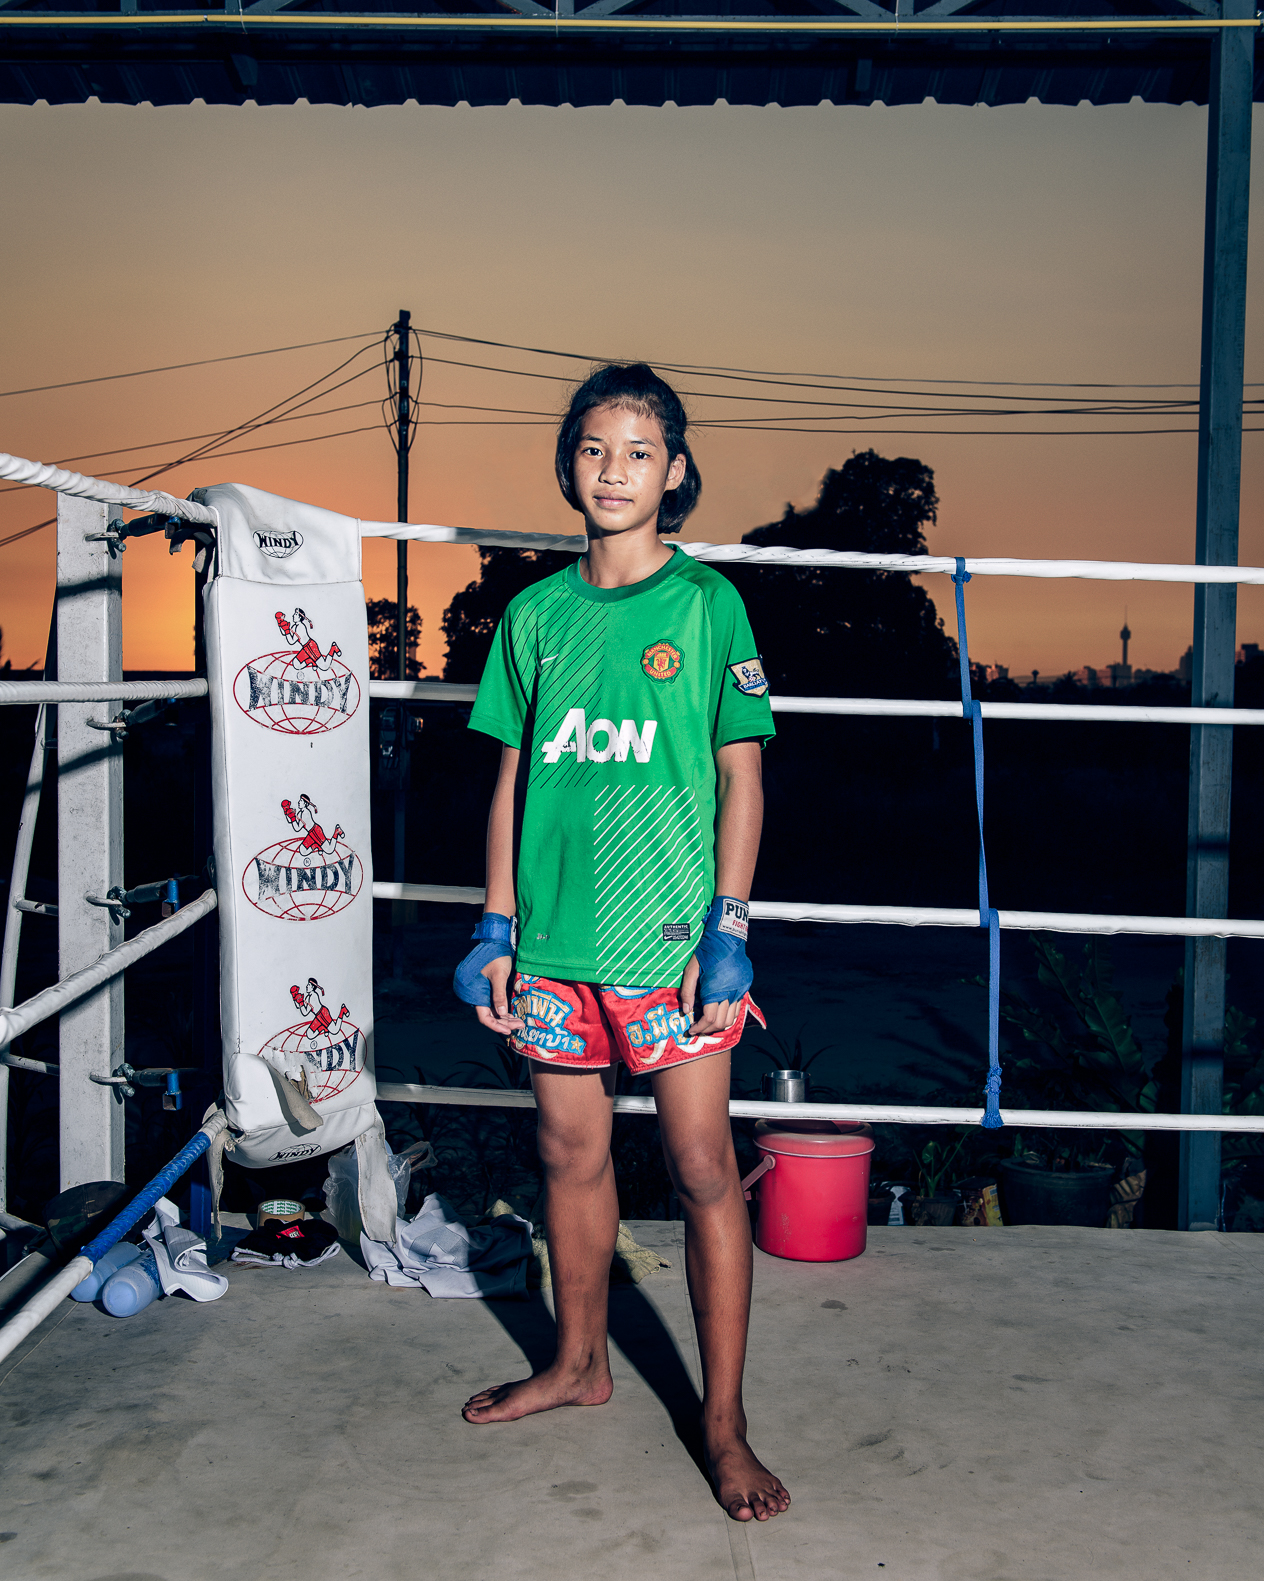 Robert-Paul-Cohen-Photography-little-tigers-muay-thai-5